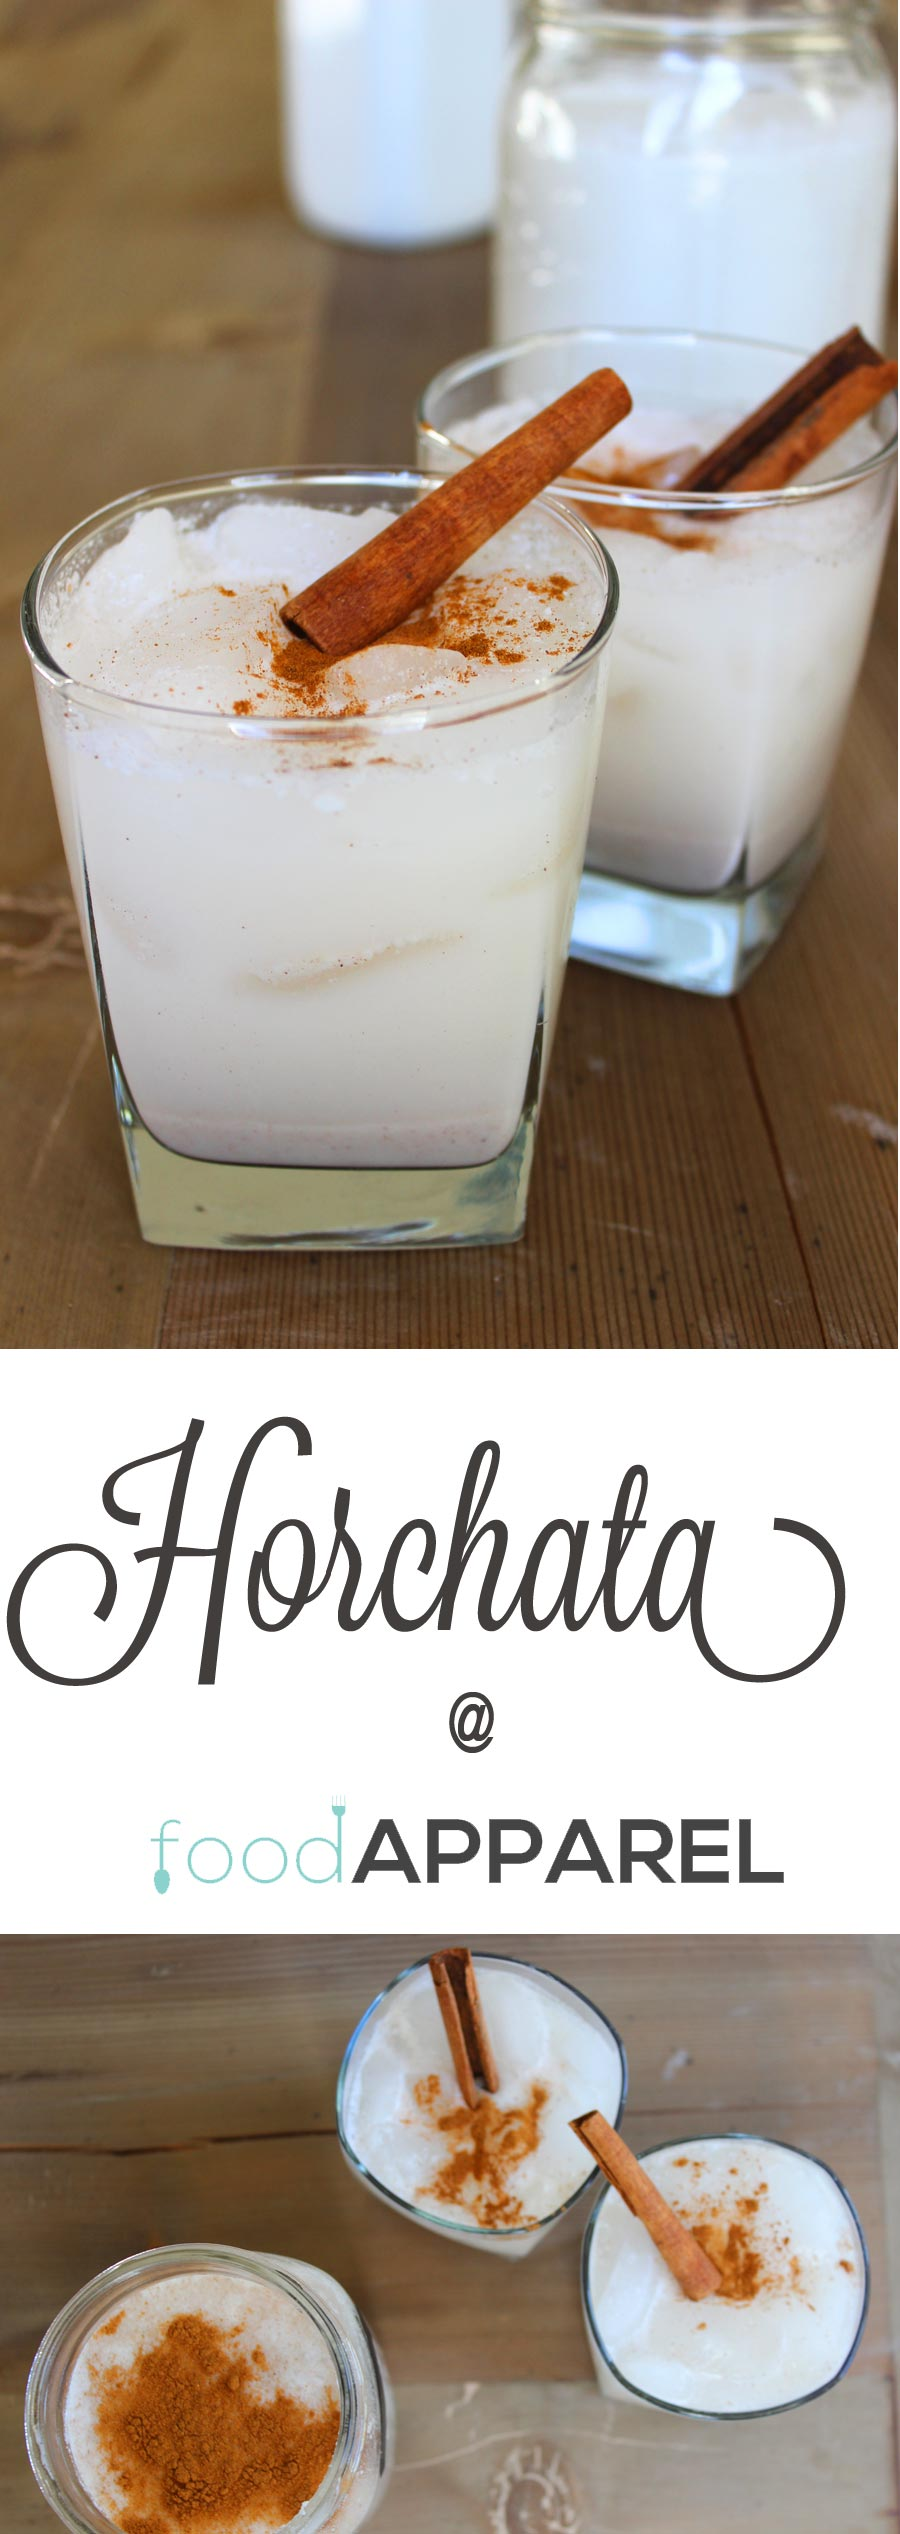 Classic Horchata - easy no-fail blender version!